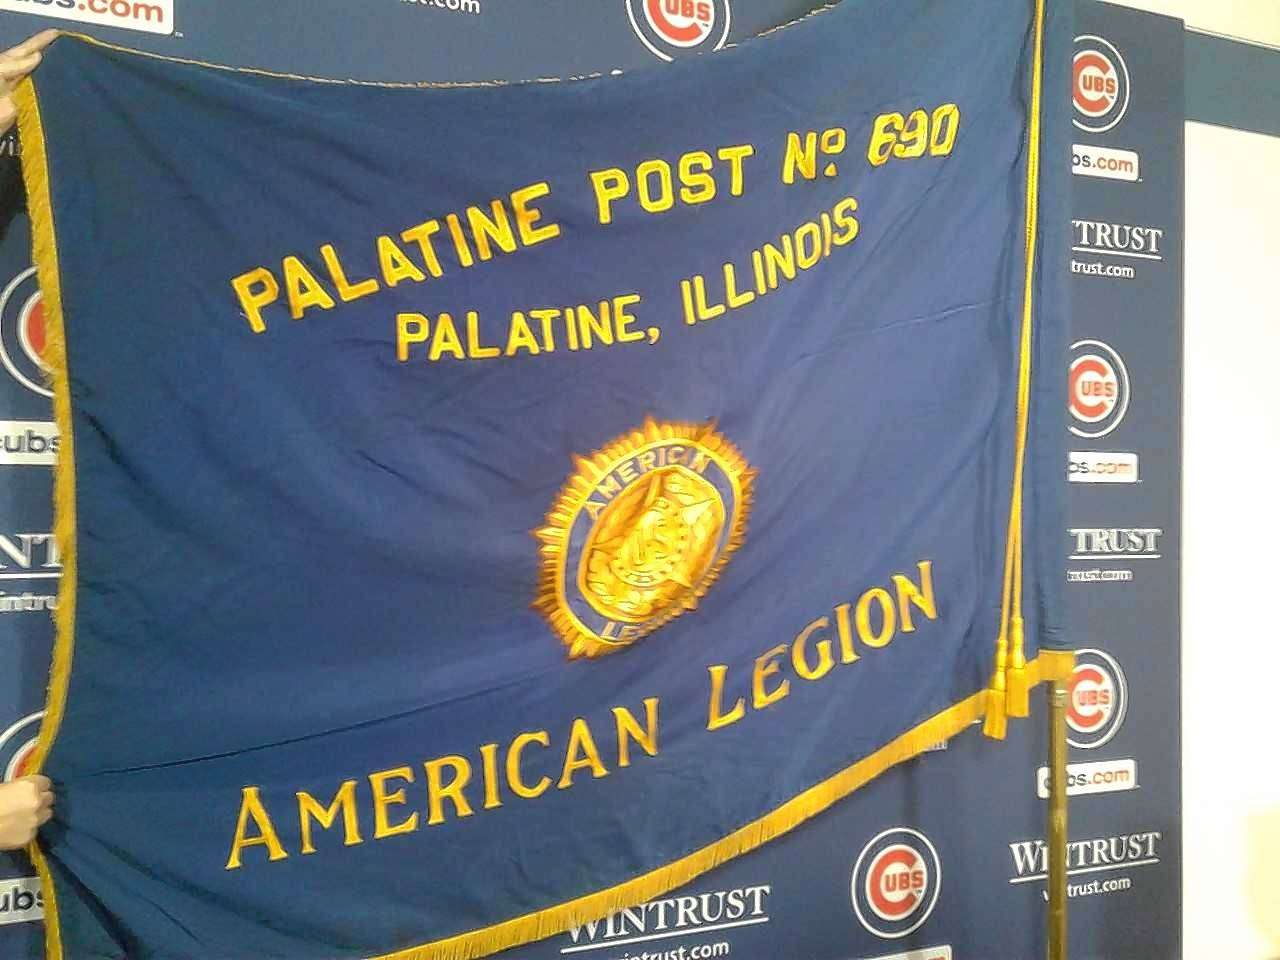 Chicago Cubs manager Joe Maddon on Monday unfurled the banner of Palatine Post 690 as he observes American Legion Week.